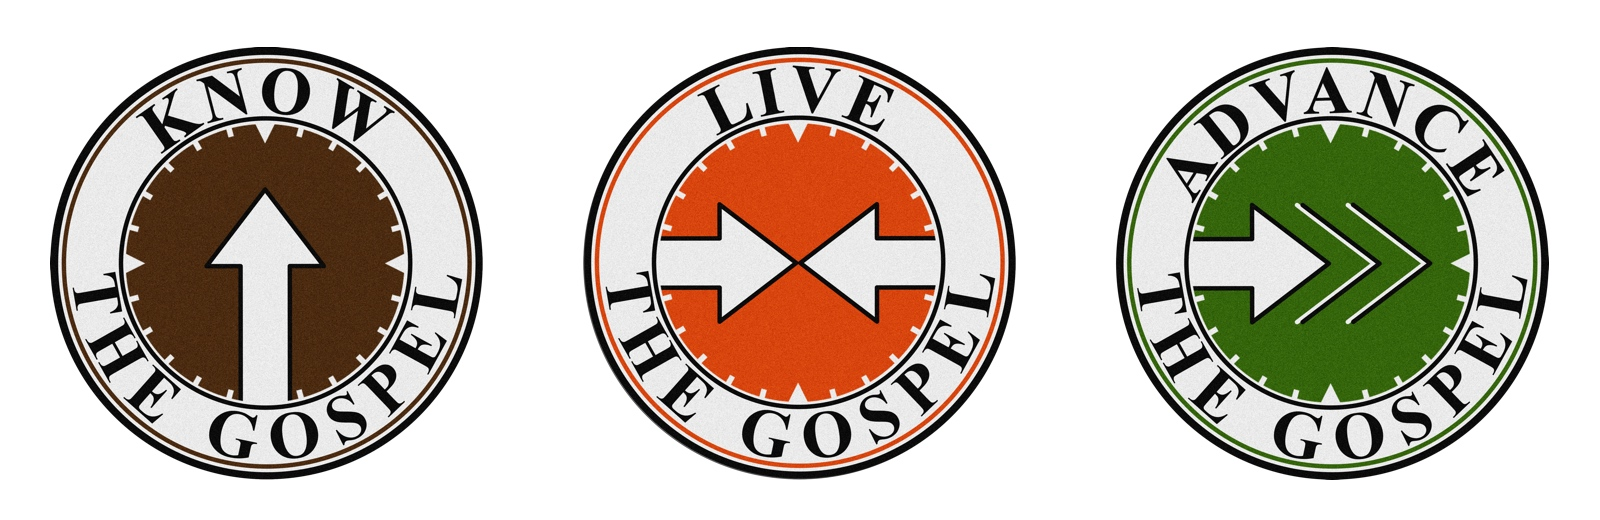 Know,+Live,+Advance+the+Gospel.jpg